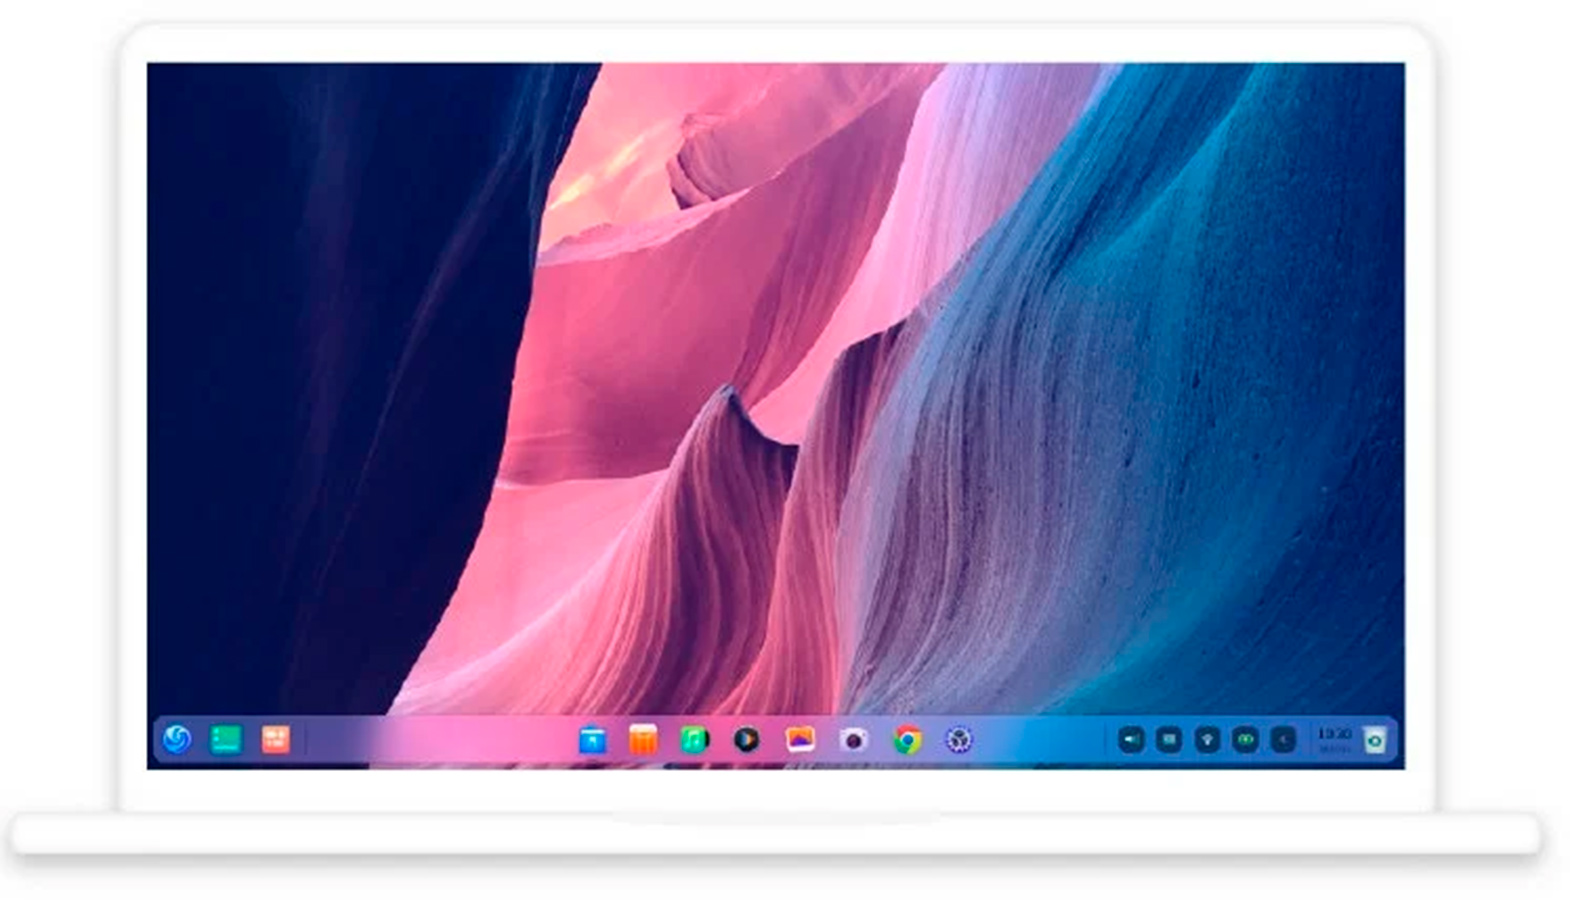 A Popular Alternative To Windows And macOS, Deepin OS, Will Appear On Tablets